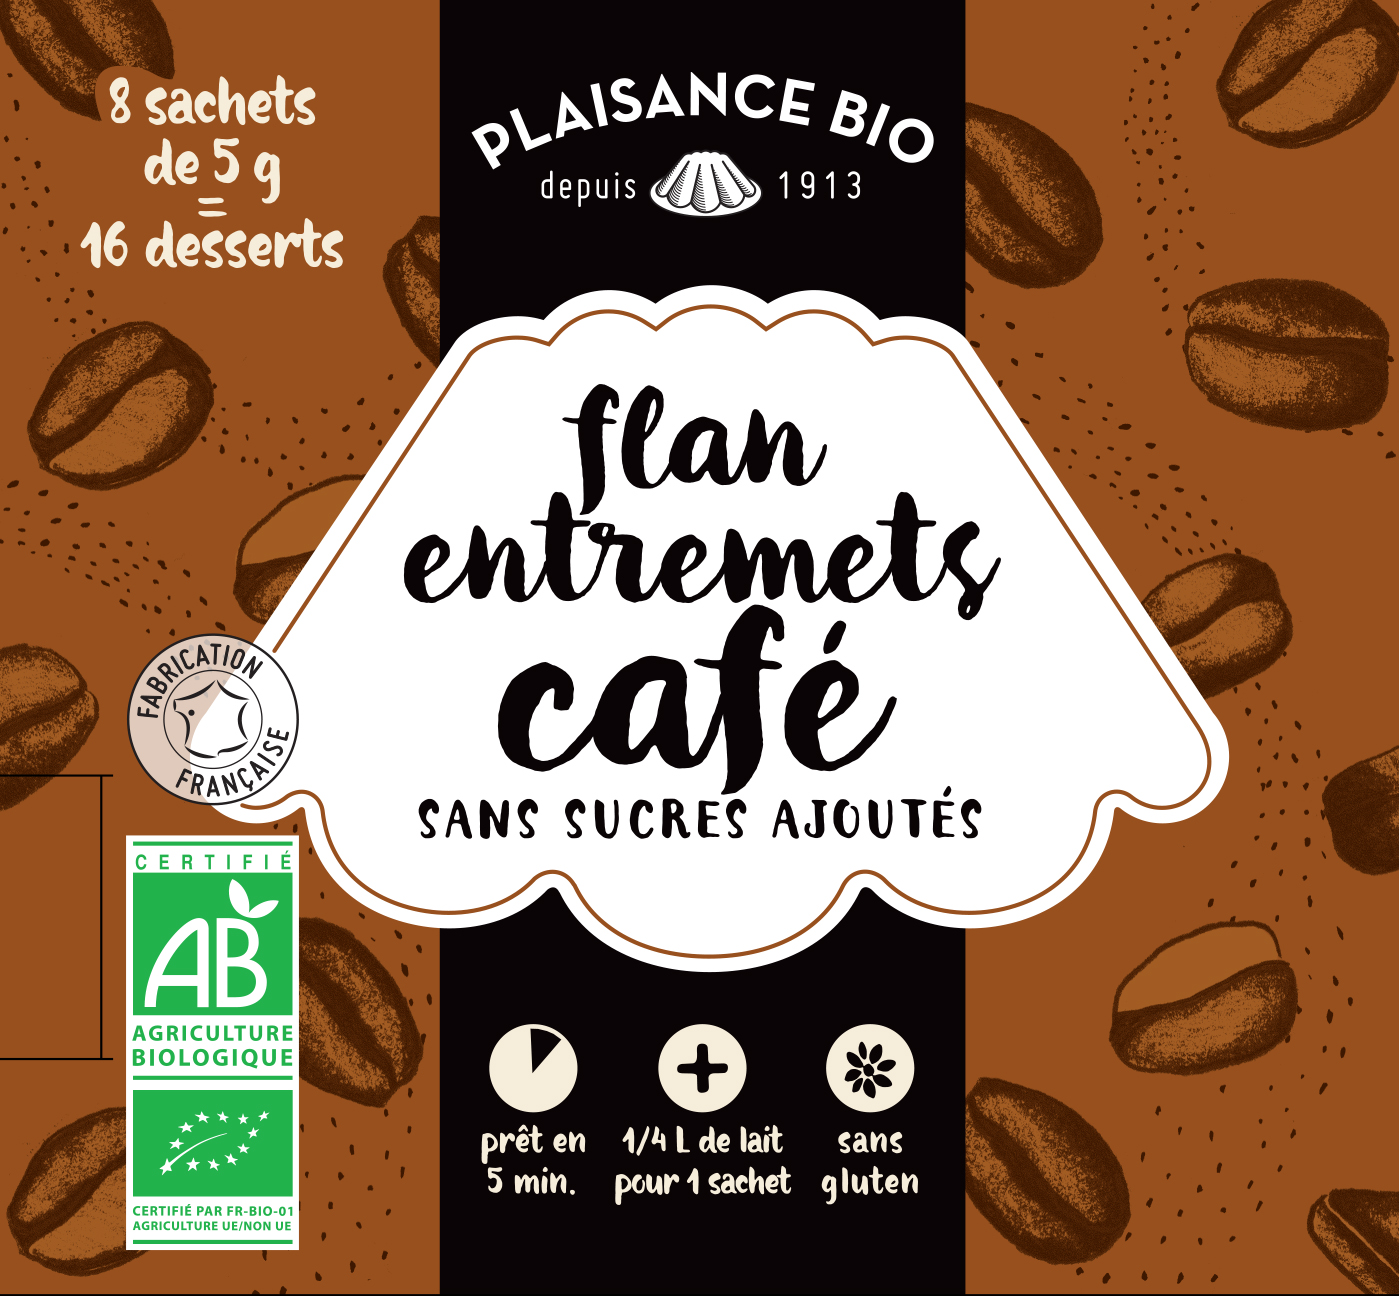 PLAISANCE BIO ENTREMETS NS CAFE